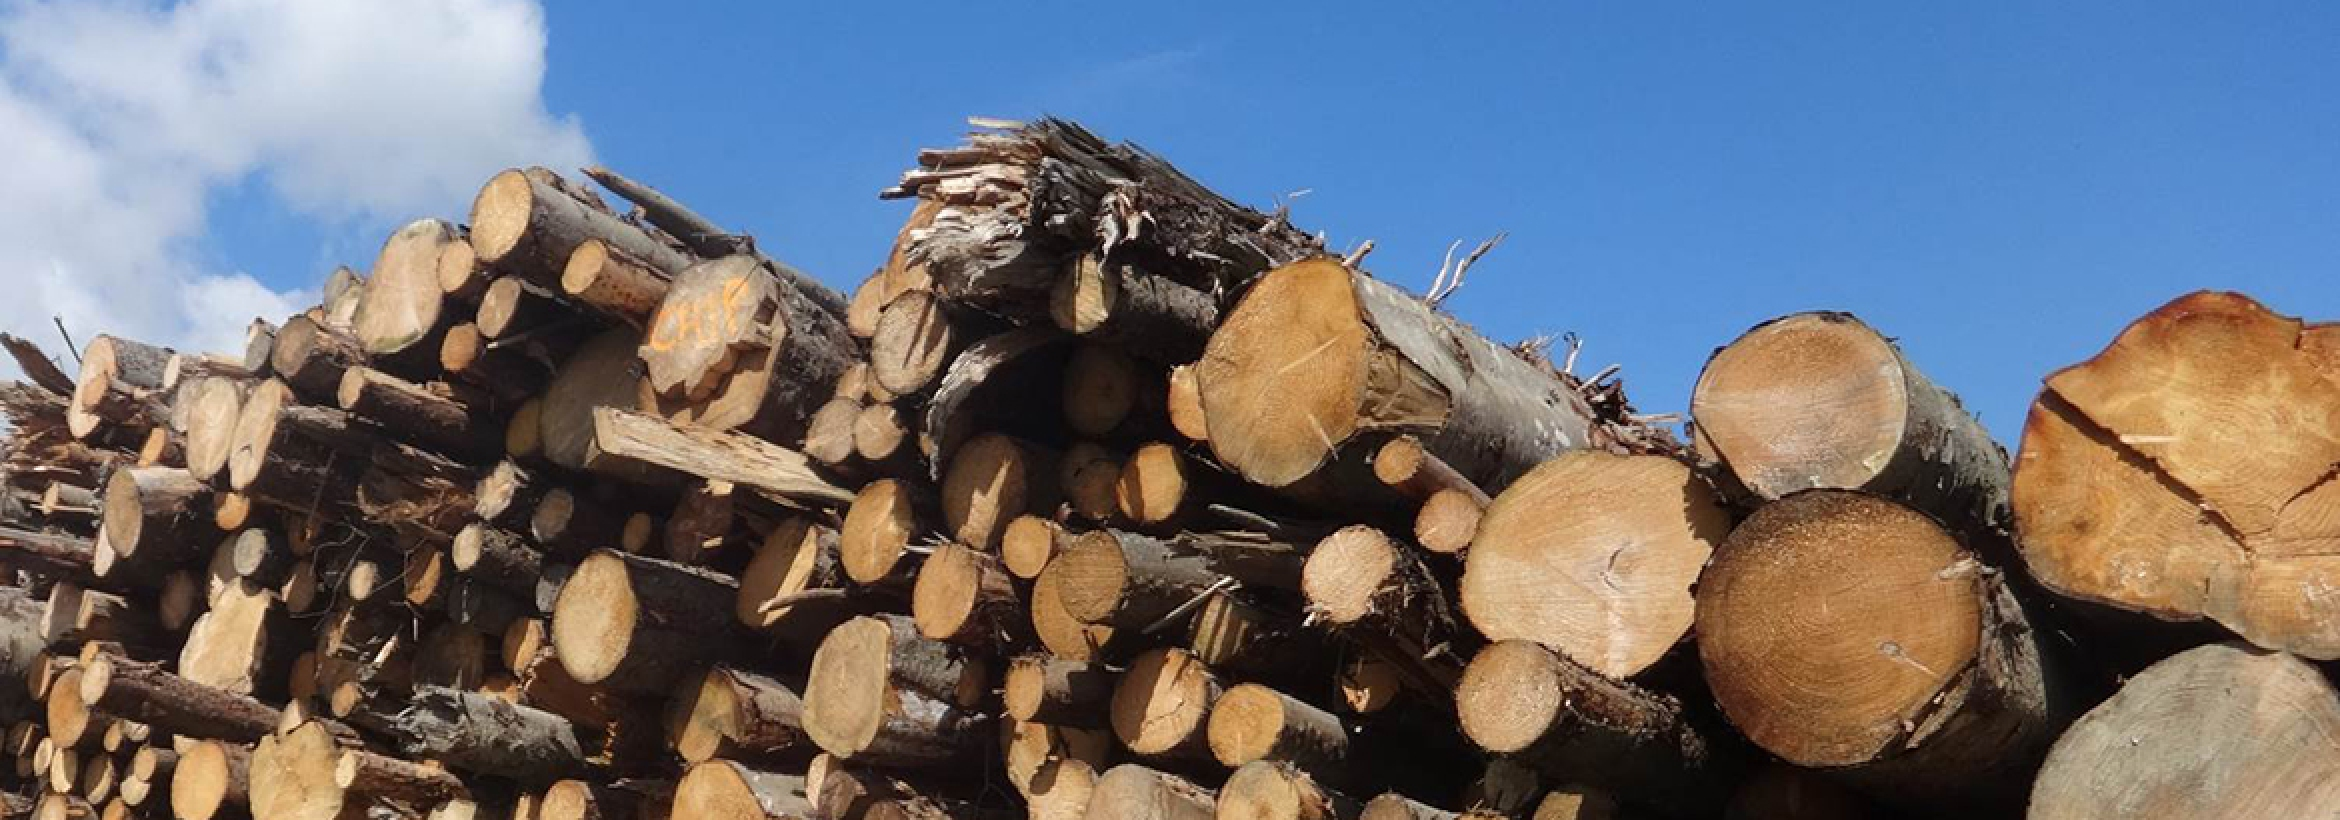 Large stack of felled trees representing  NFU Energy's sustainable fuel reporting service